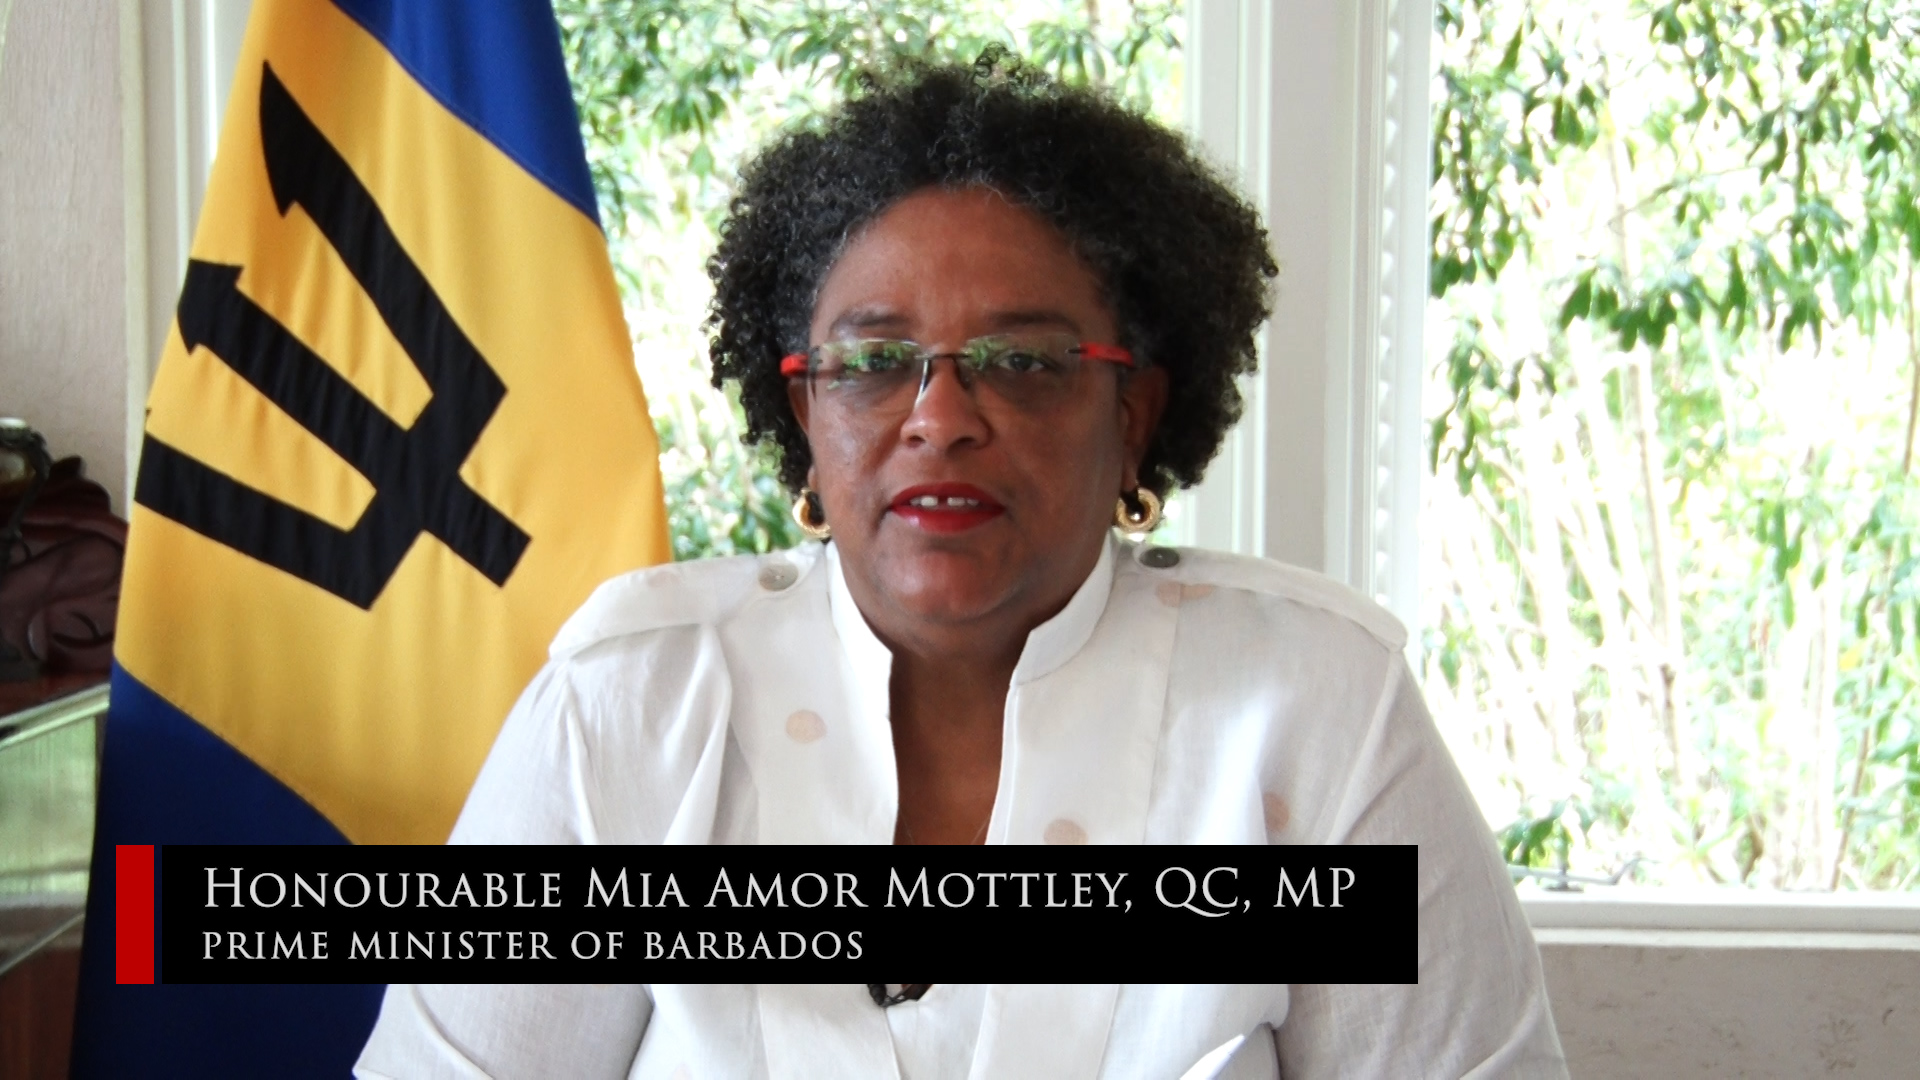 Remarks by the Hon. Mia Amor Mottley, Prime Minister of Barbados, as outgoing Chair of CARICOM, during the 20th Special Meeting of CARICOM Heads of Government, July 3, 2020 - CARICOM